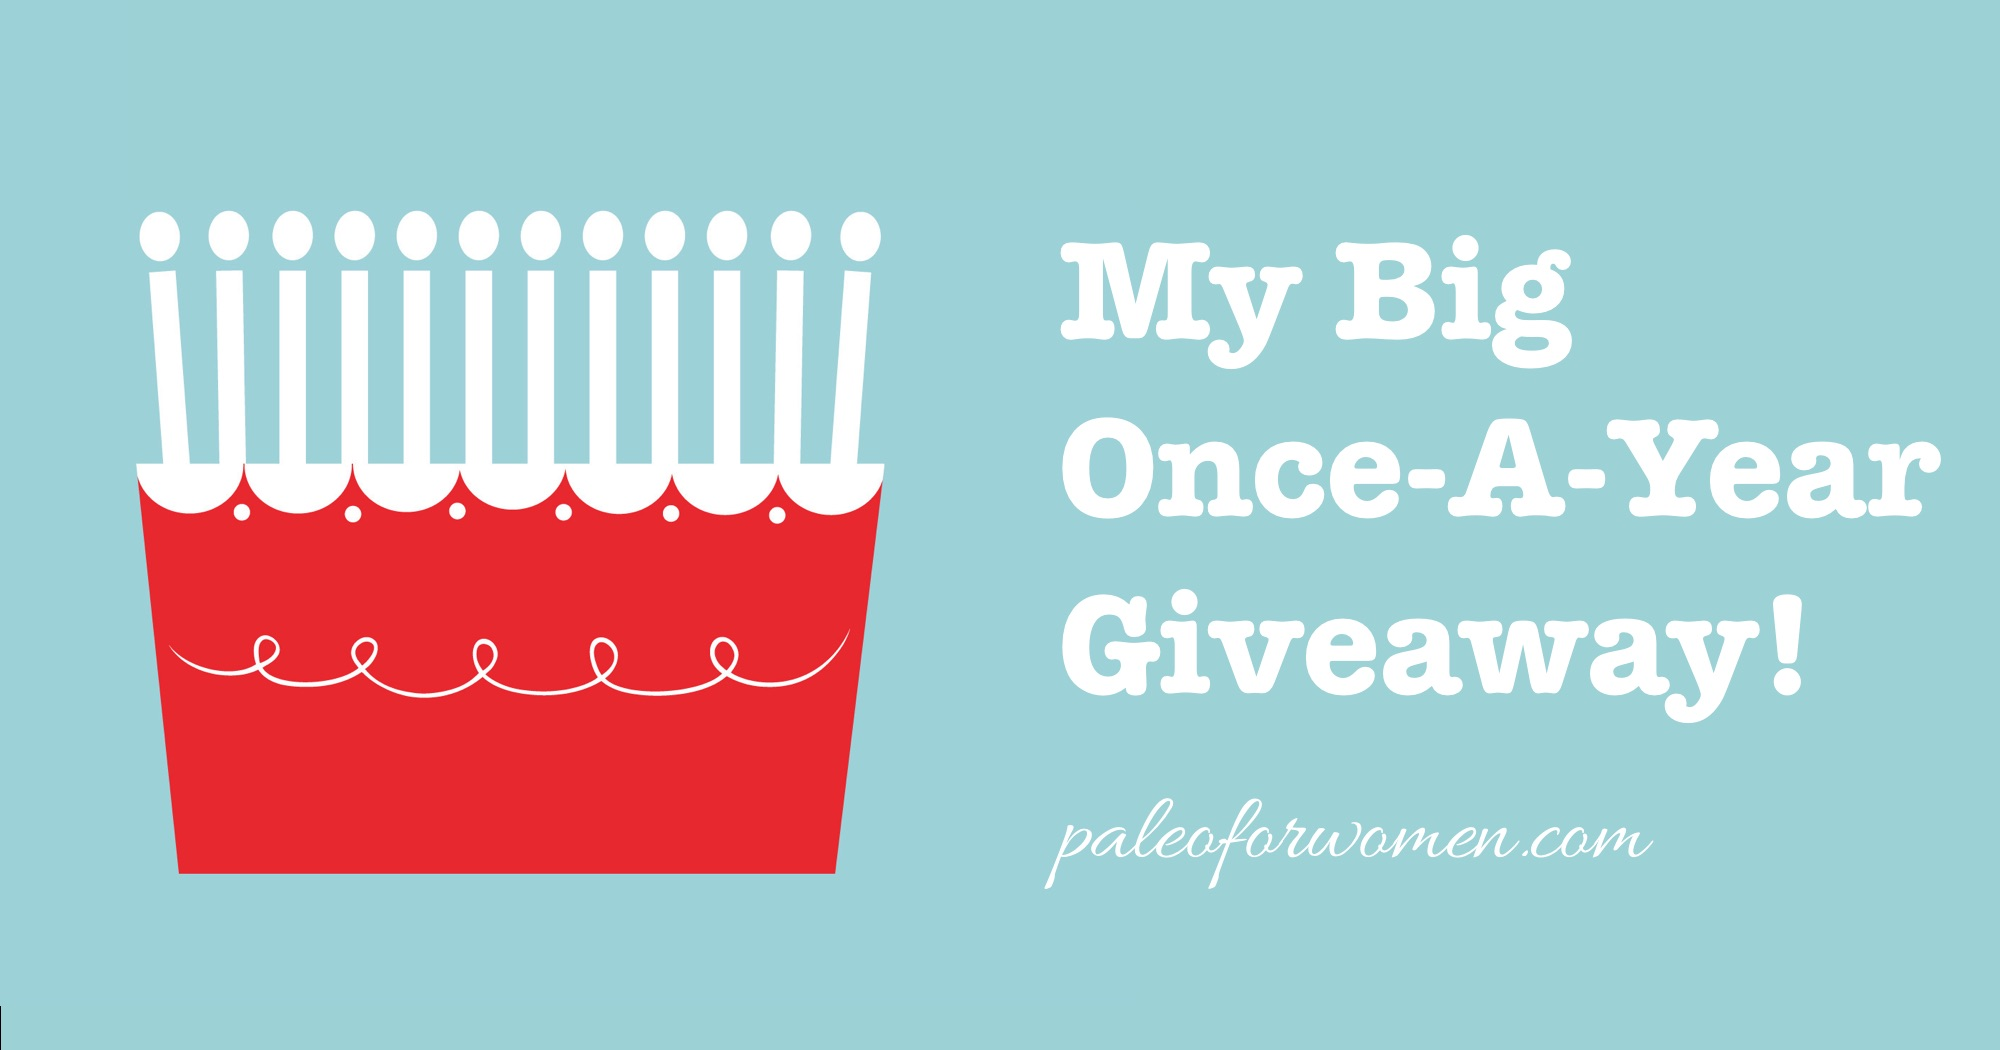 My Big Once-a-Year Giveaway!